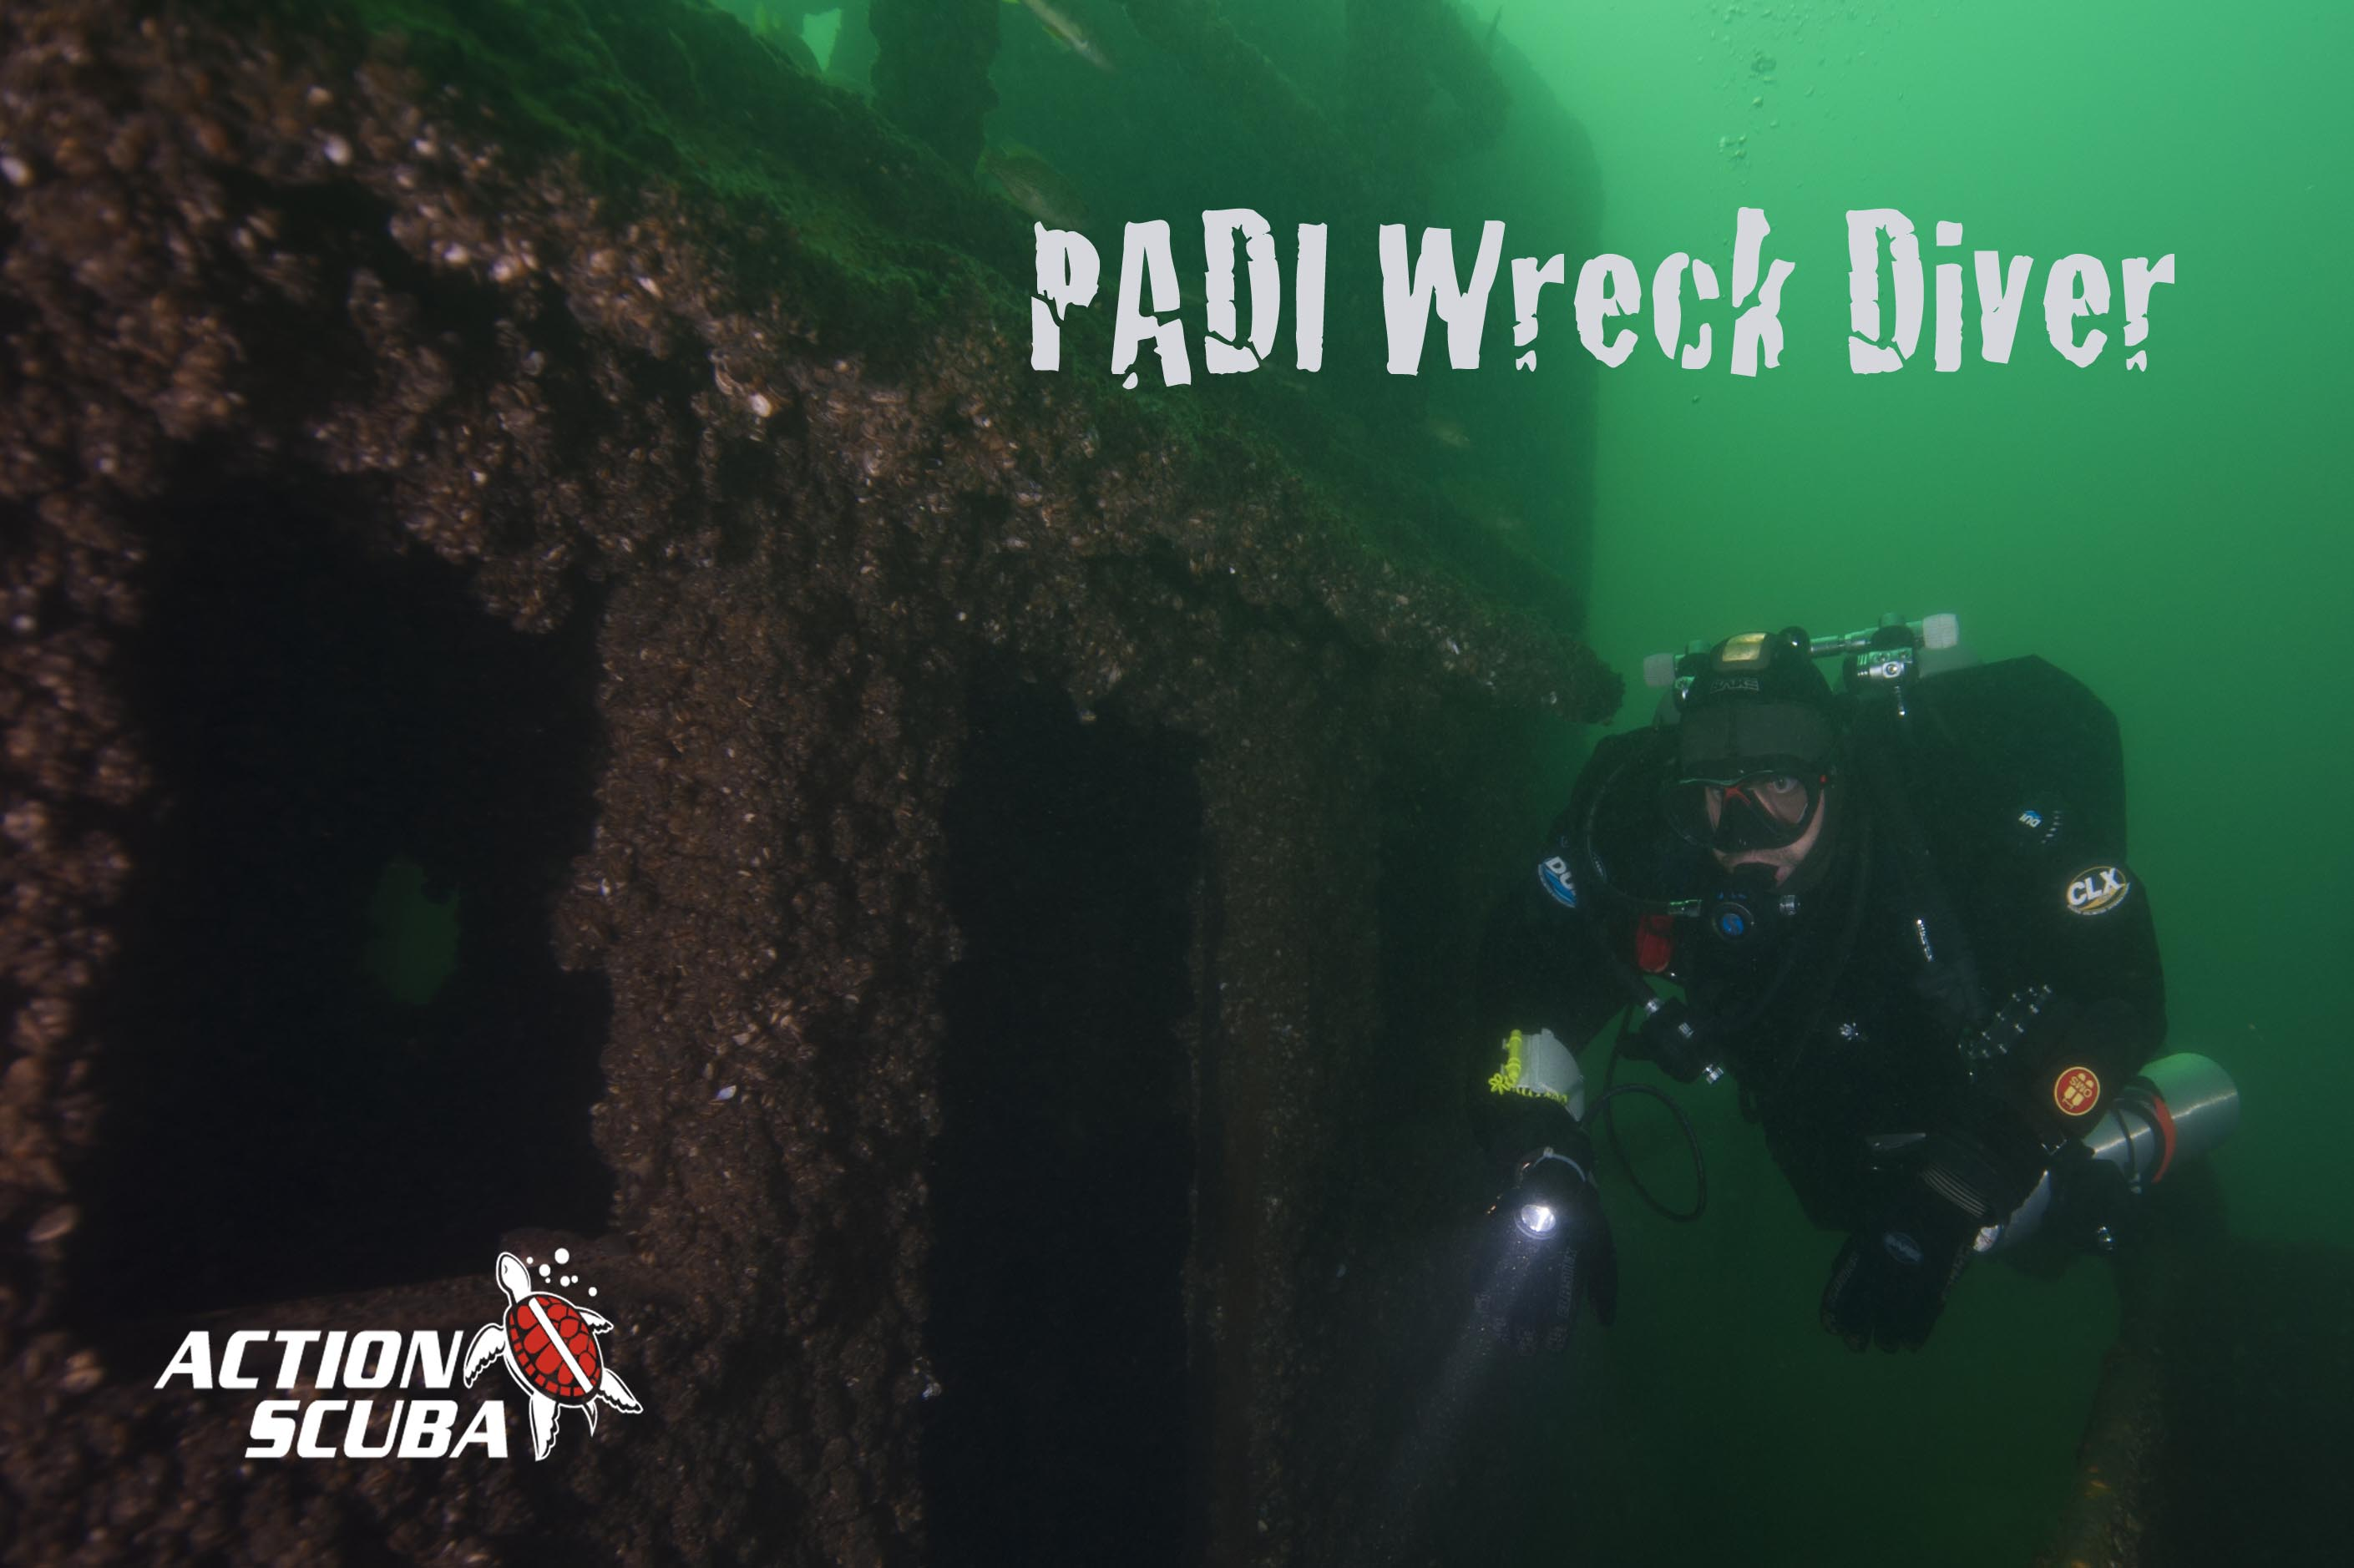 PADI Wreck Diver Course with Action Scuba Montreal